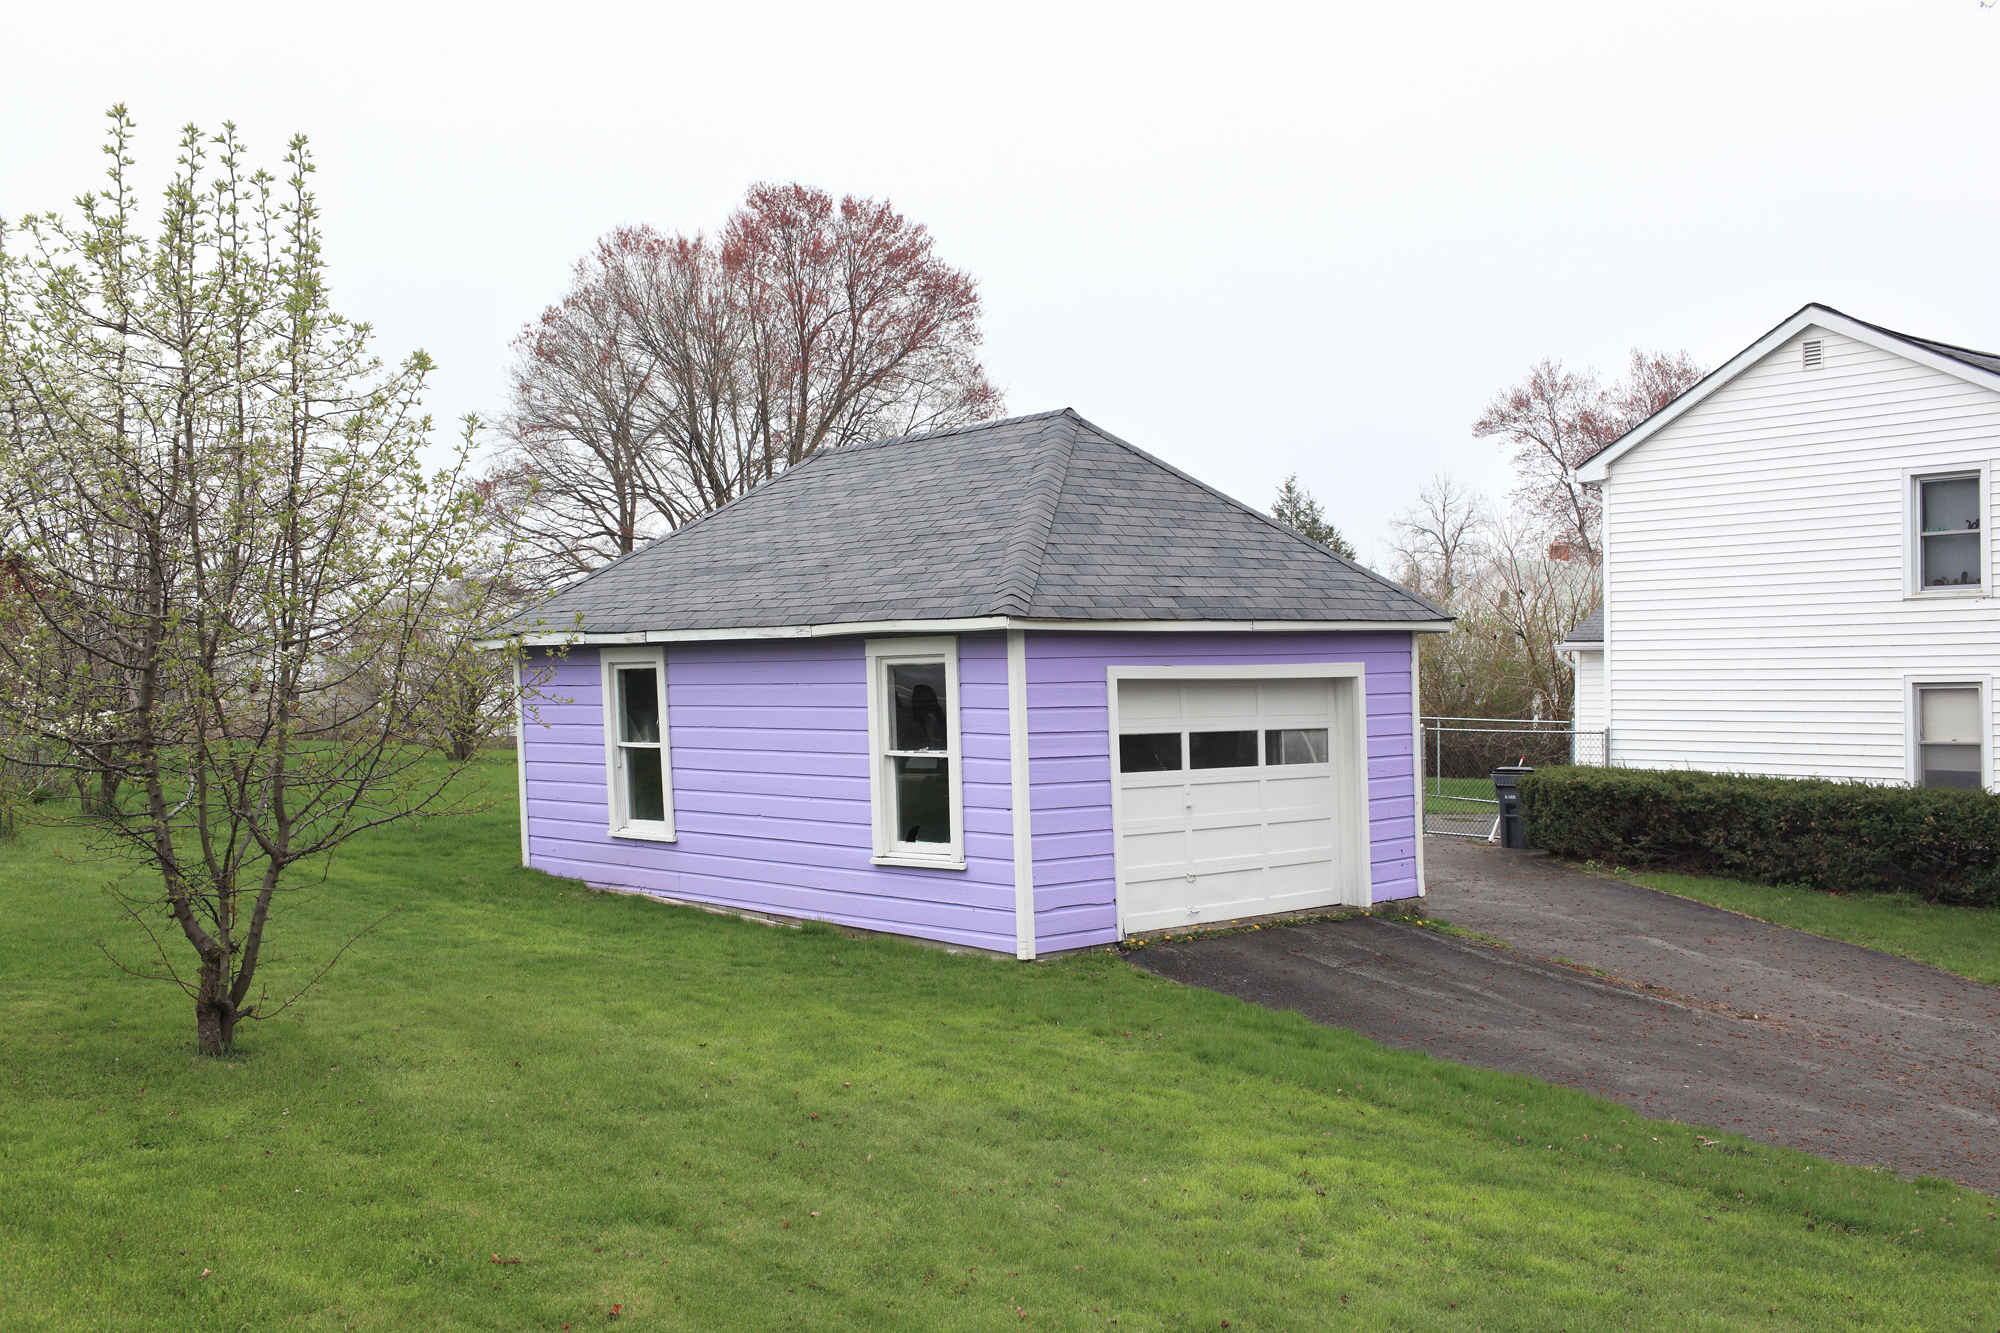 PURPLE HOUSE 15X23.jpg